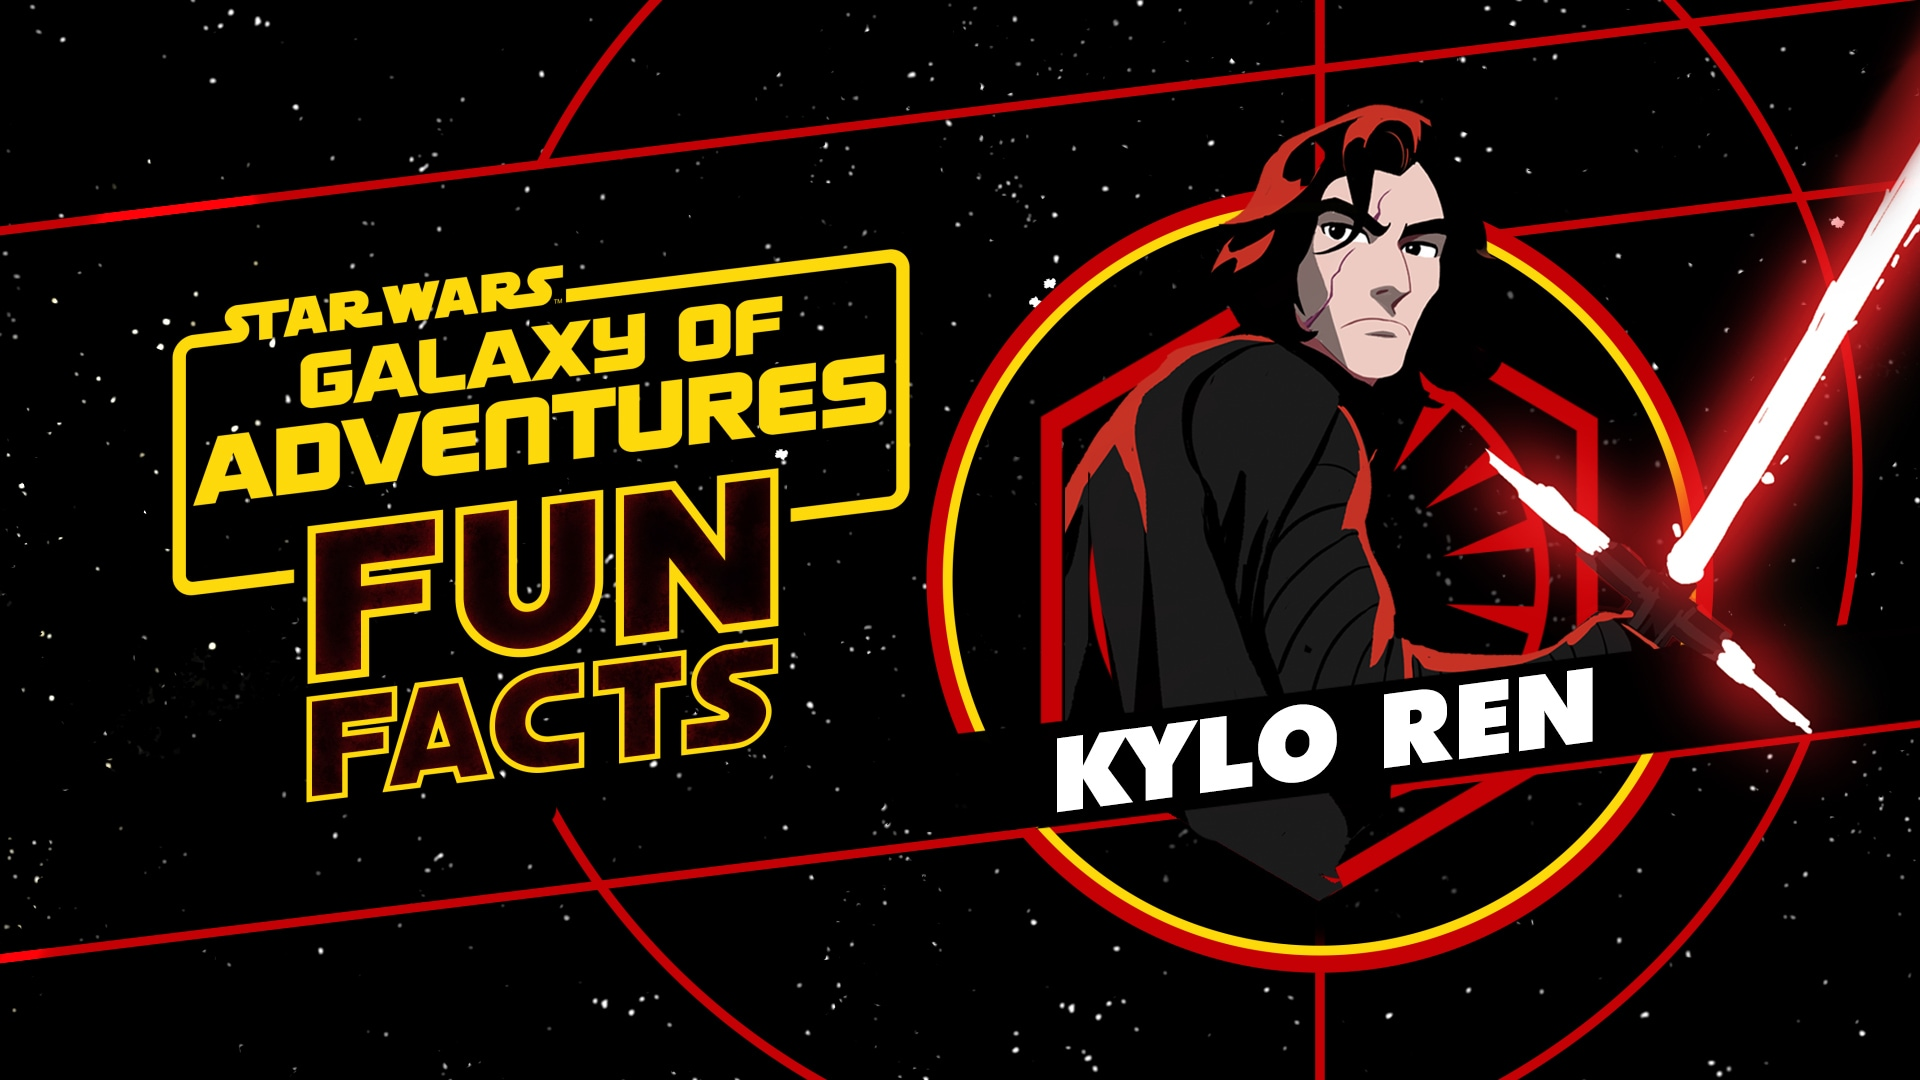 Kylo Ren | Star Wars Galaxy of Adventures Fun Facts